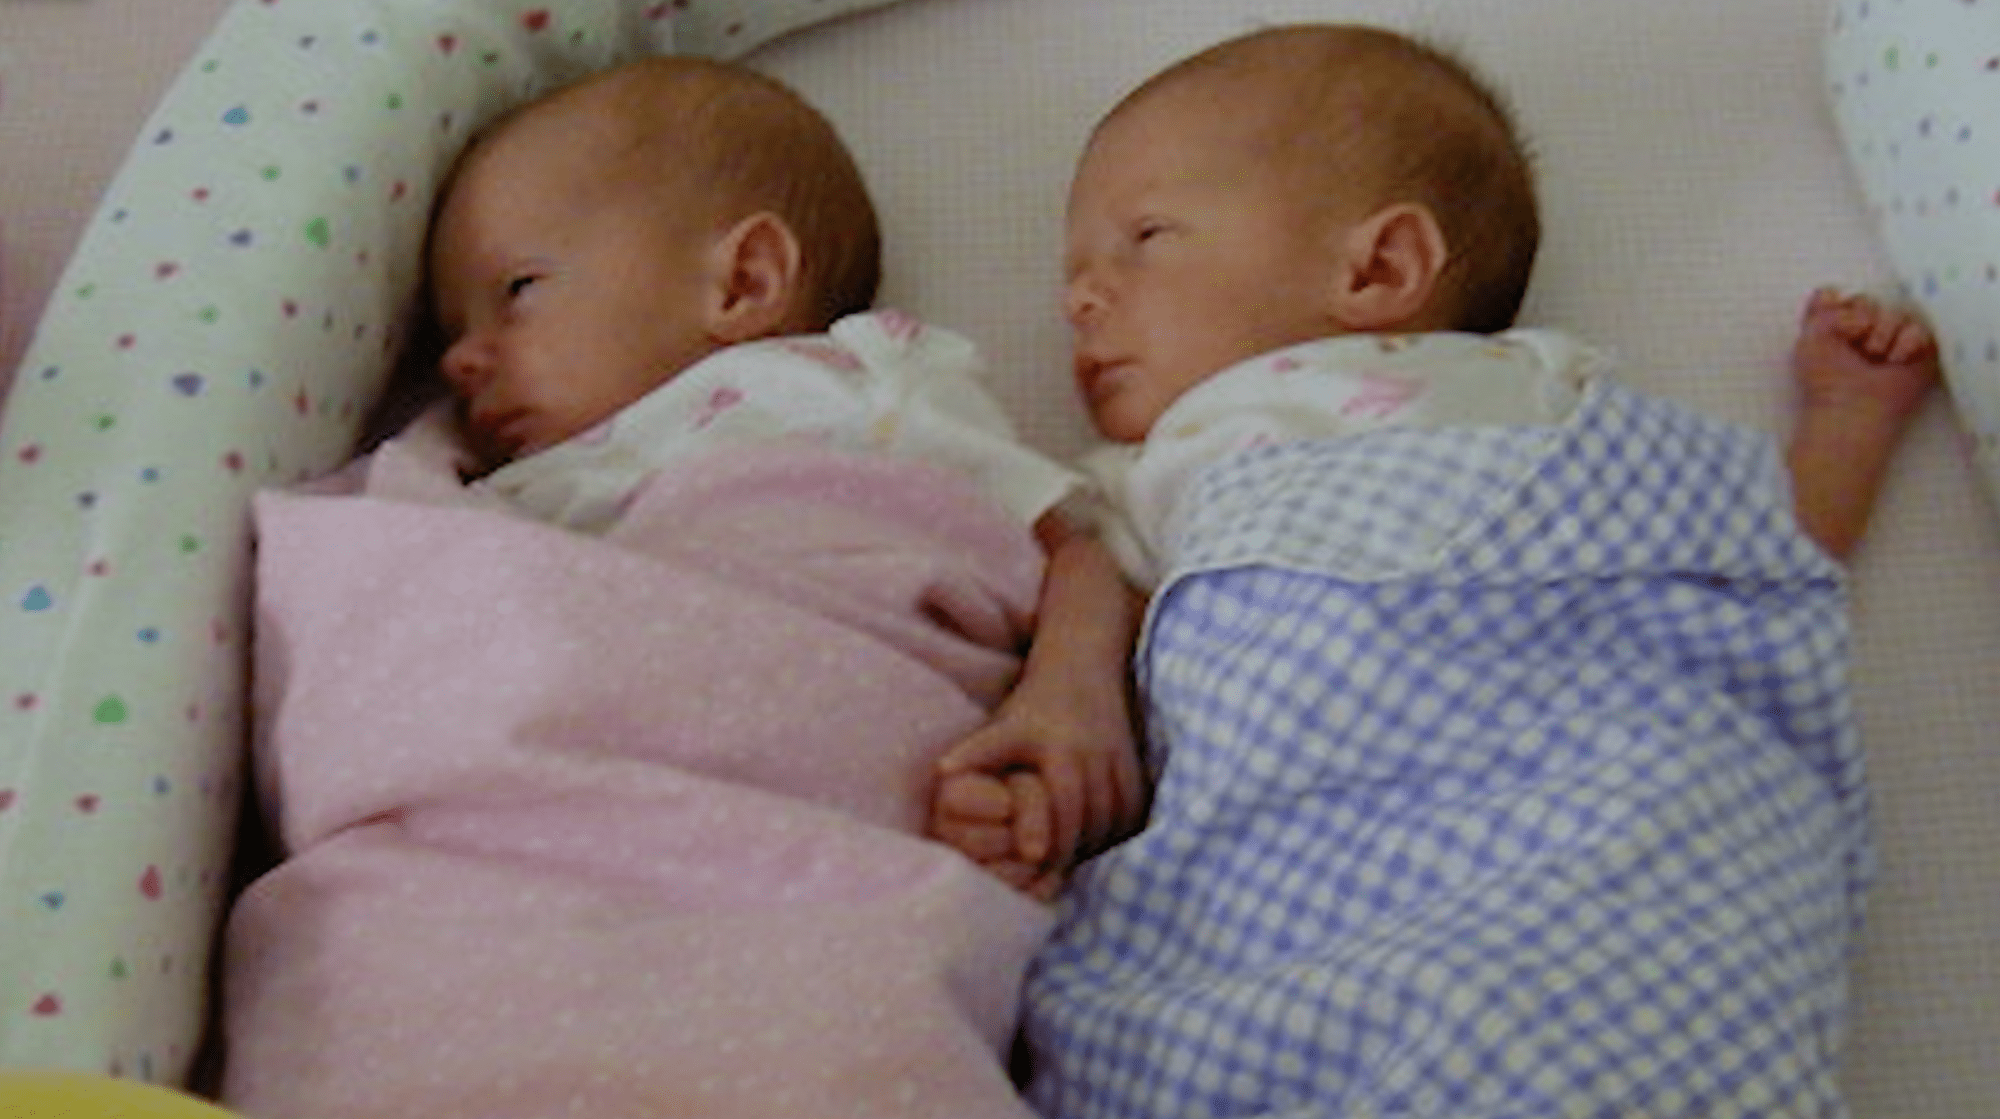 Twins Aspen and Ashley Somers are seen in a baby photo of them shared by their family.